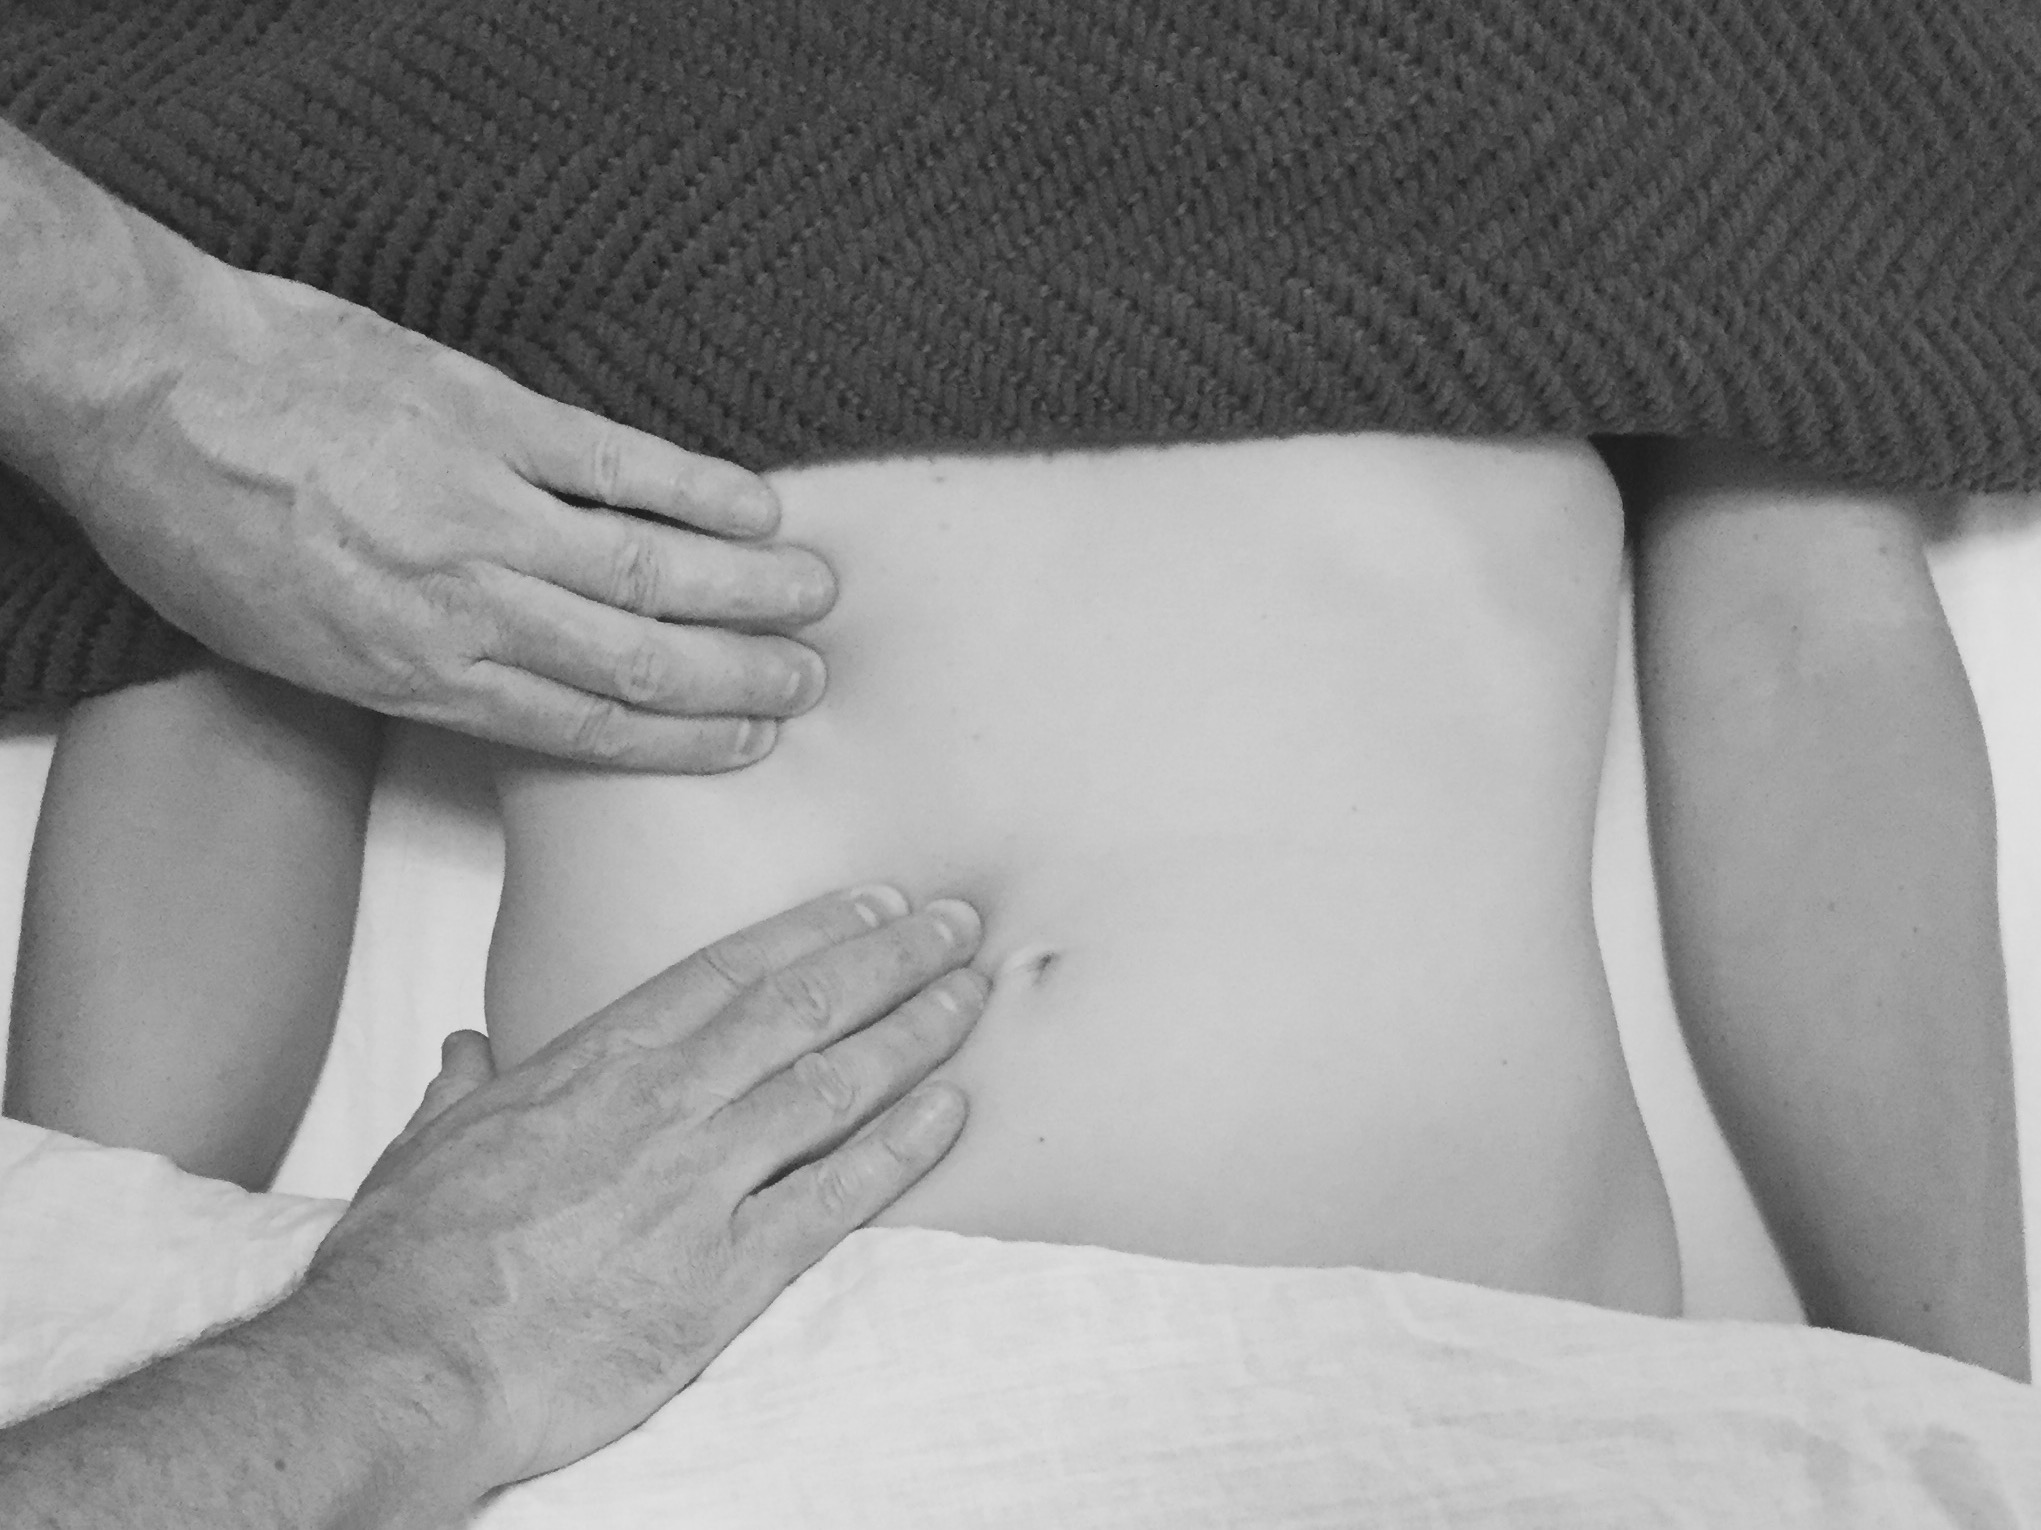 visceral manipulation sibo SIBO bloating digestive dysfunction portland oregon manual therapy bodywork acupuncture chinese medicine Michael McMahon massage IBS.jpg